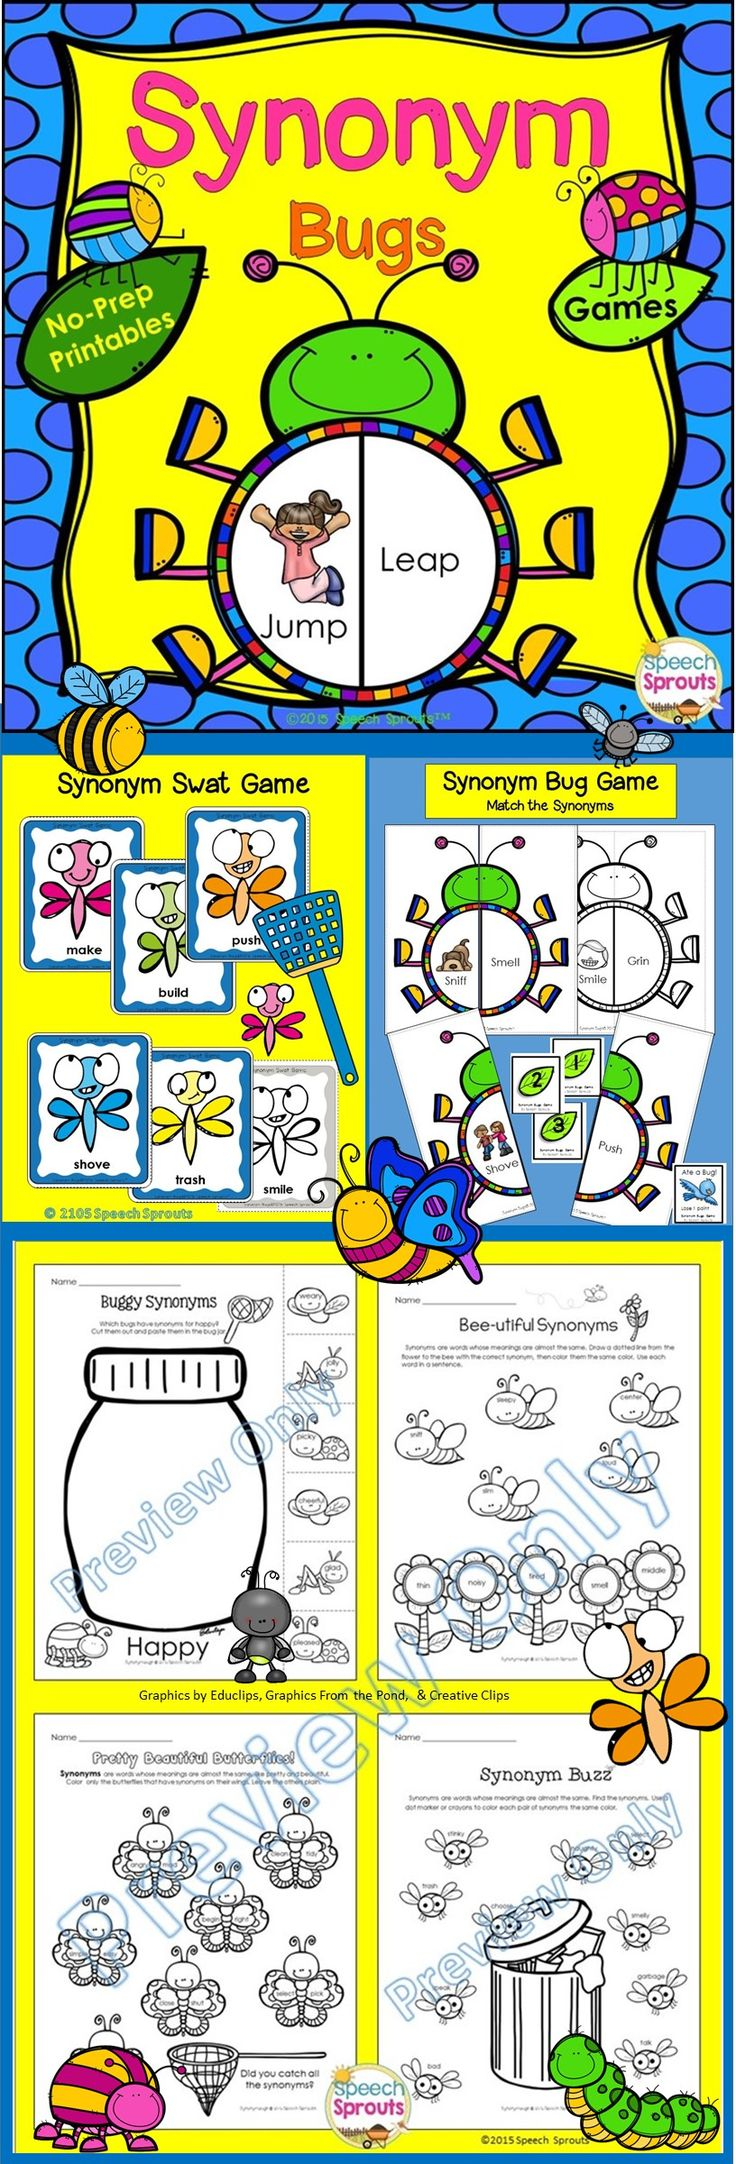 $ Have your kids buzzing about synonyms this spring! Grab a flyswatter and be the first to swat the matching synonyms as you build your bug collection in the Synonym Swat Game! See how many bugs you can build in Synonym Bugs! Grab the hole puncher and eat through some leaves as you find synonyms in Synonym Crunch! 15 no-prep interactive activities for your classroom/ speech therapy room, or home practice